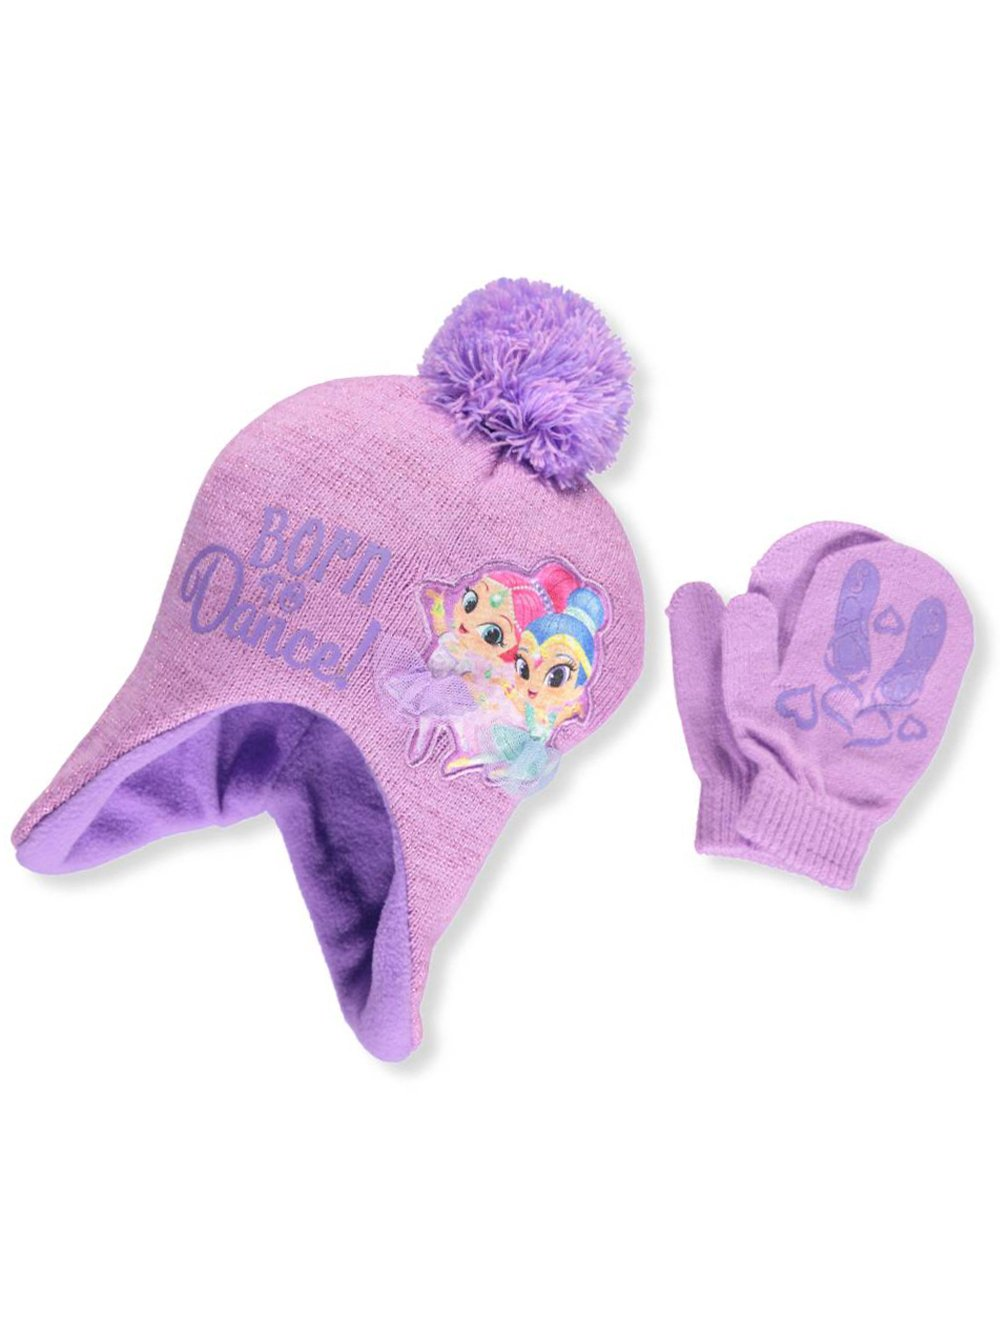 Shimmer And Shine Girls' Beanie & Mittens Set - lilac/multi, one size Simmer And Shine